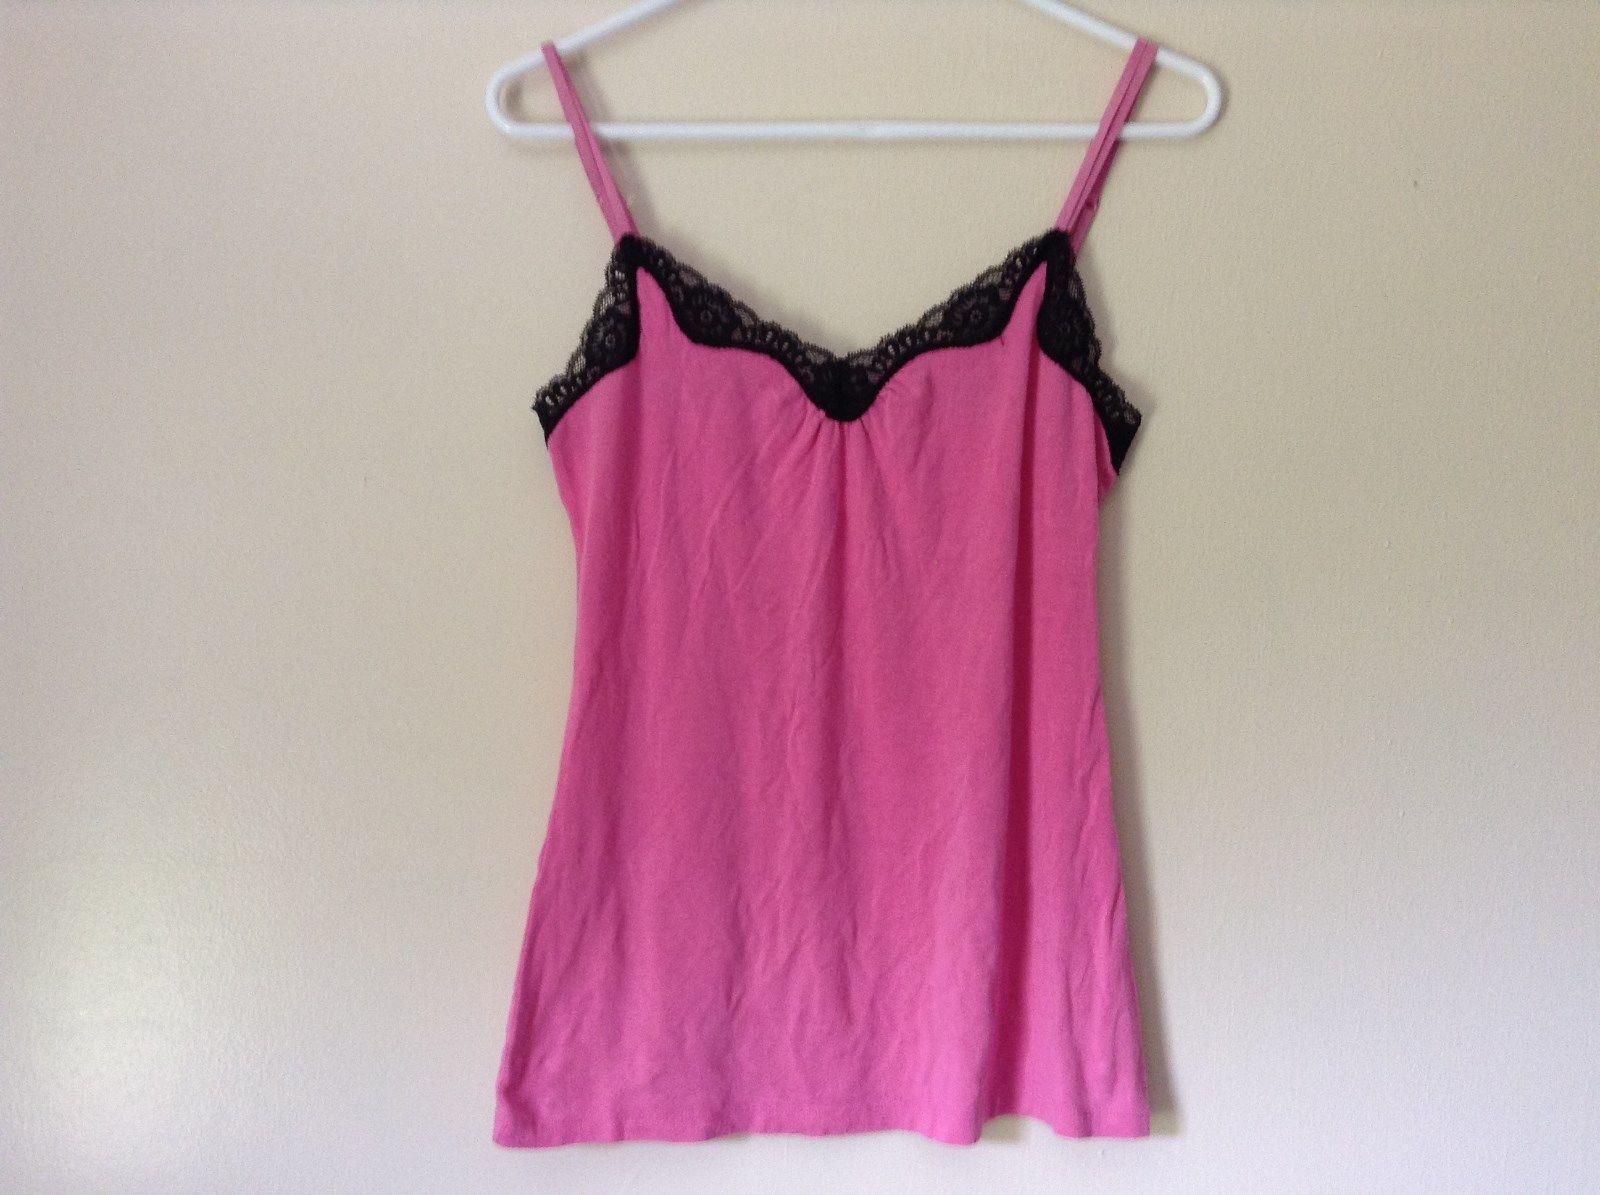 Pink Spaghetti Strap Tank Top Black Lace at Top NO TAG